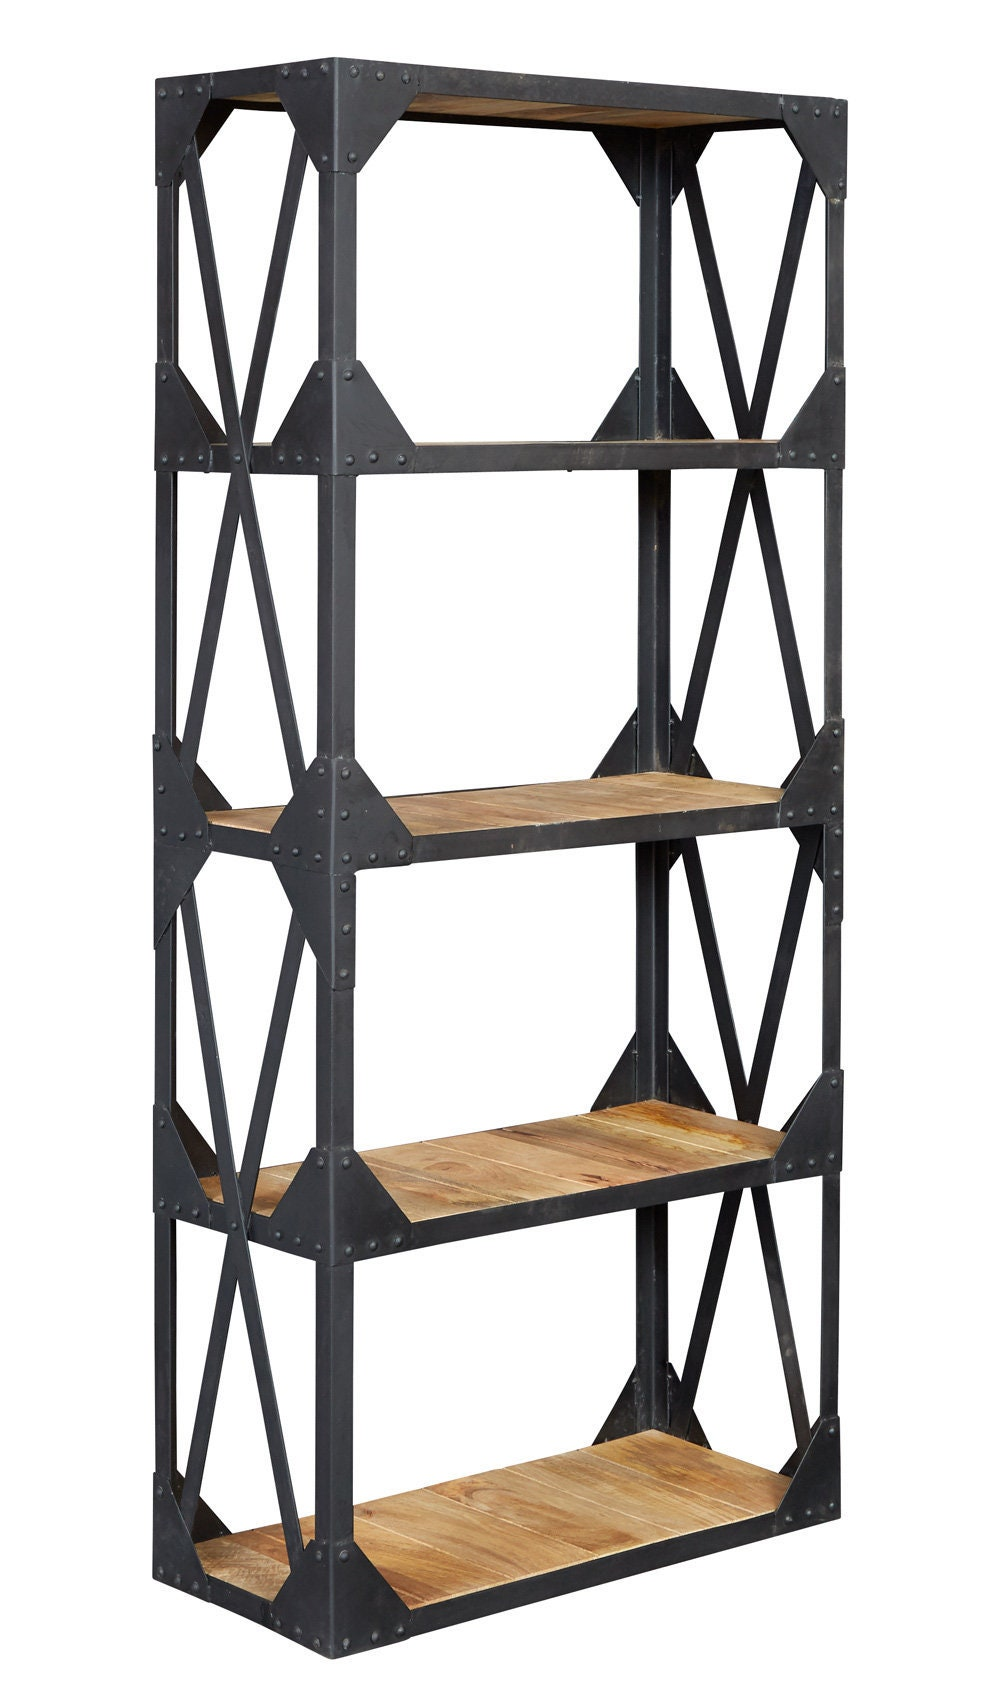 Ascot Large Bookcase Shelving Unit Handcrafted Solid Wood Natural Rustic Metal